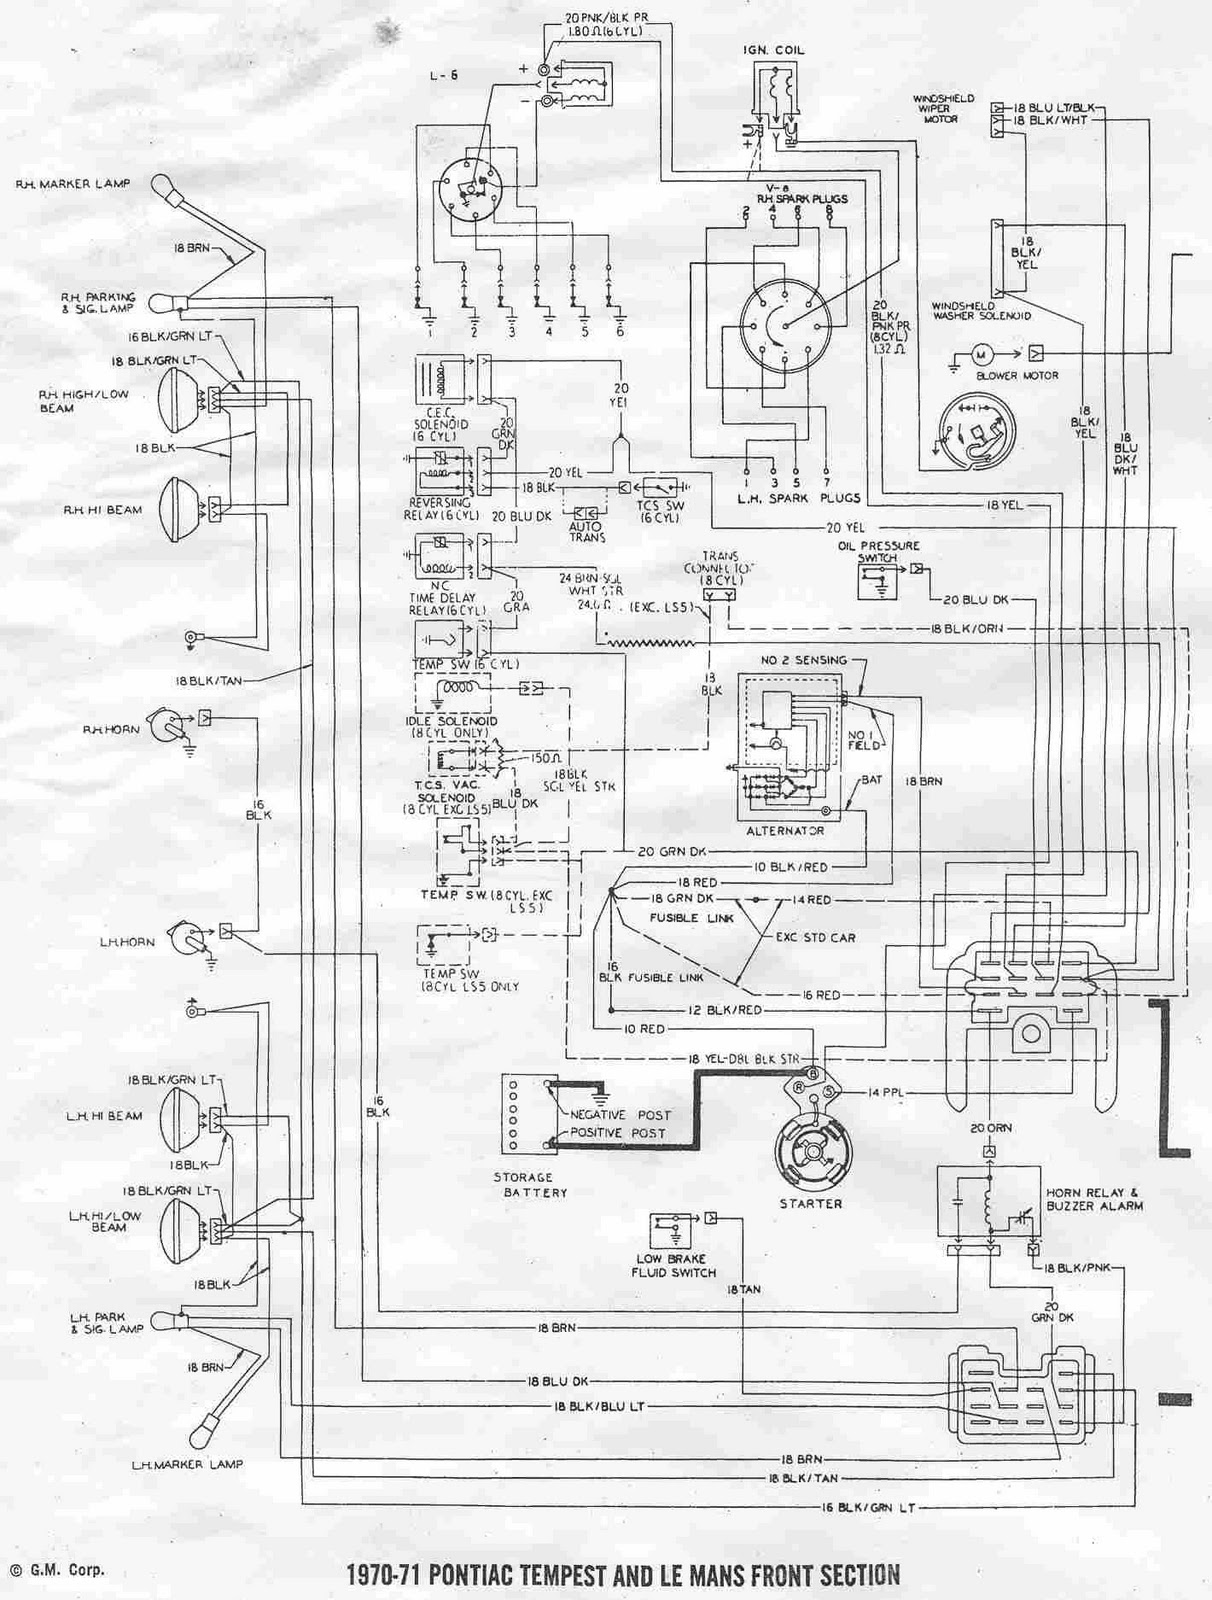 1970 Ford Ltd Wiring Diagram | Wiring Library